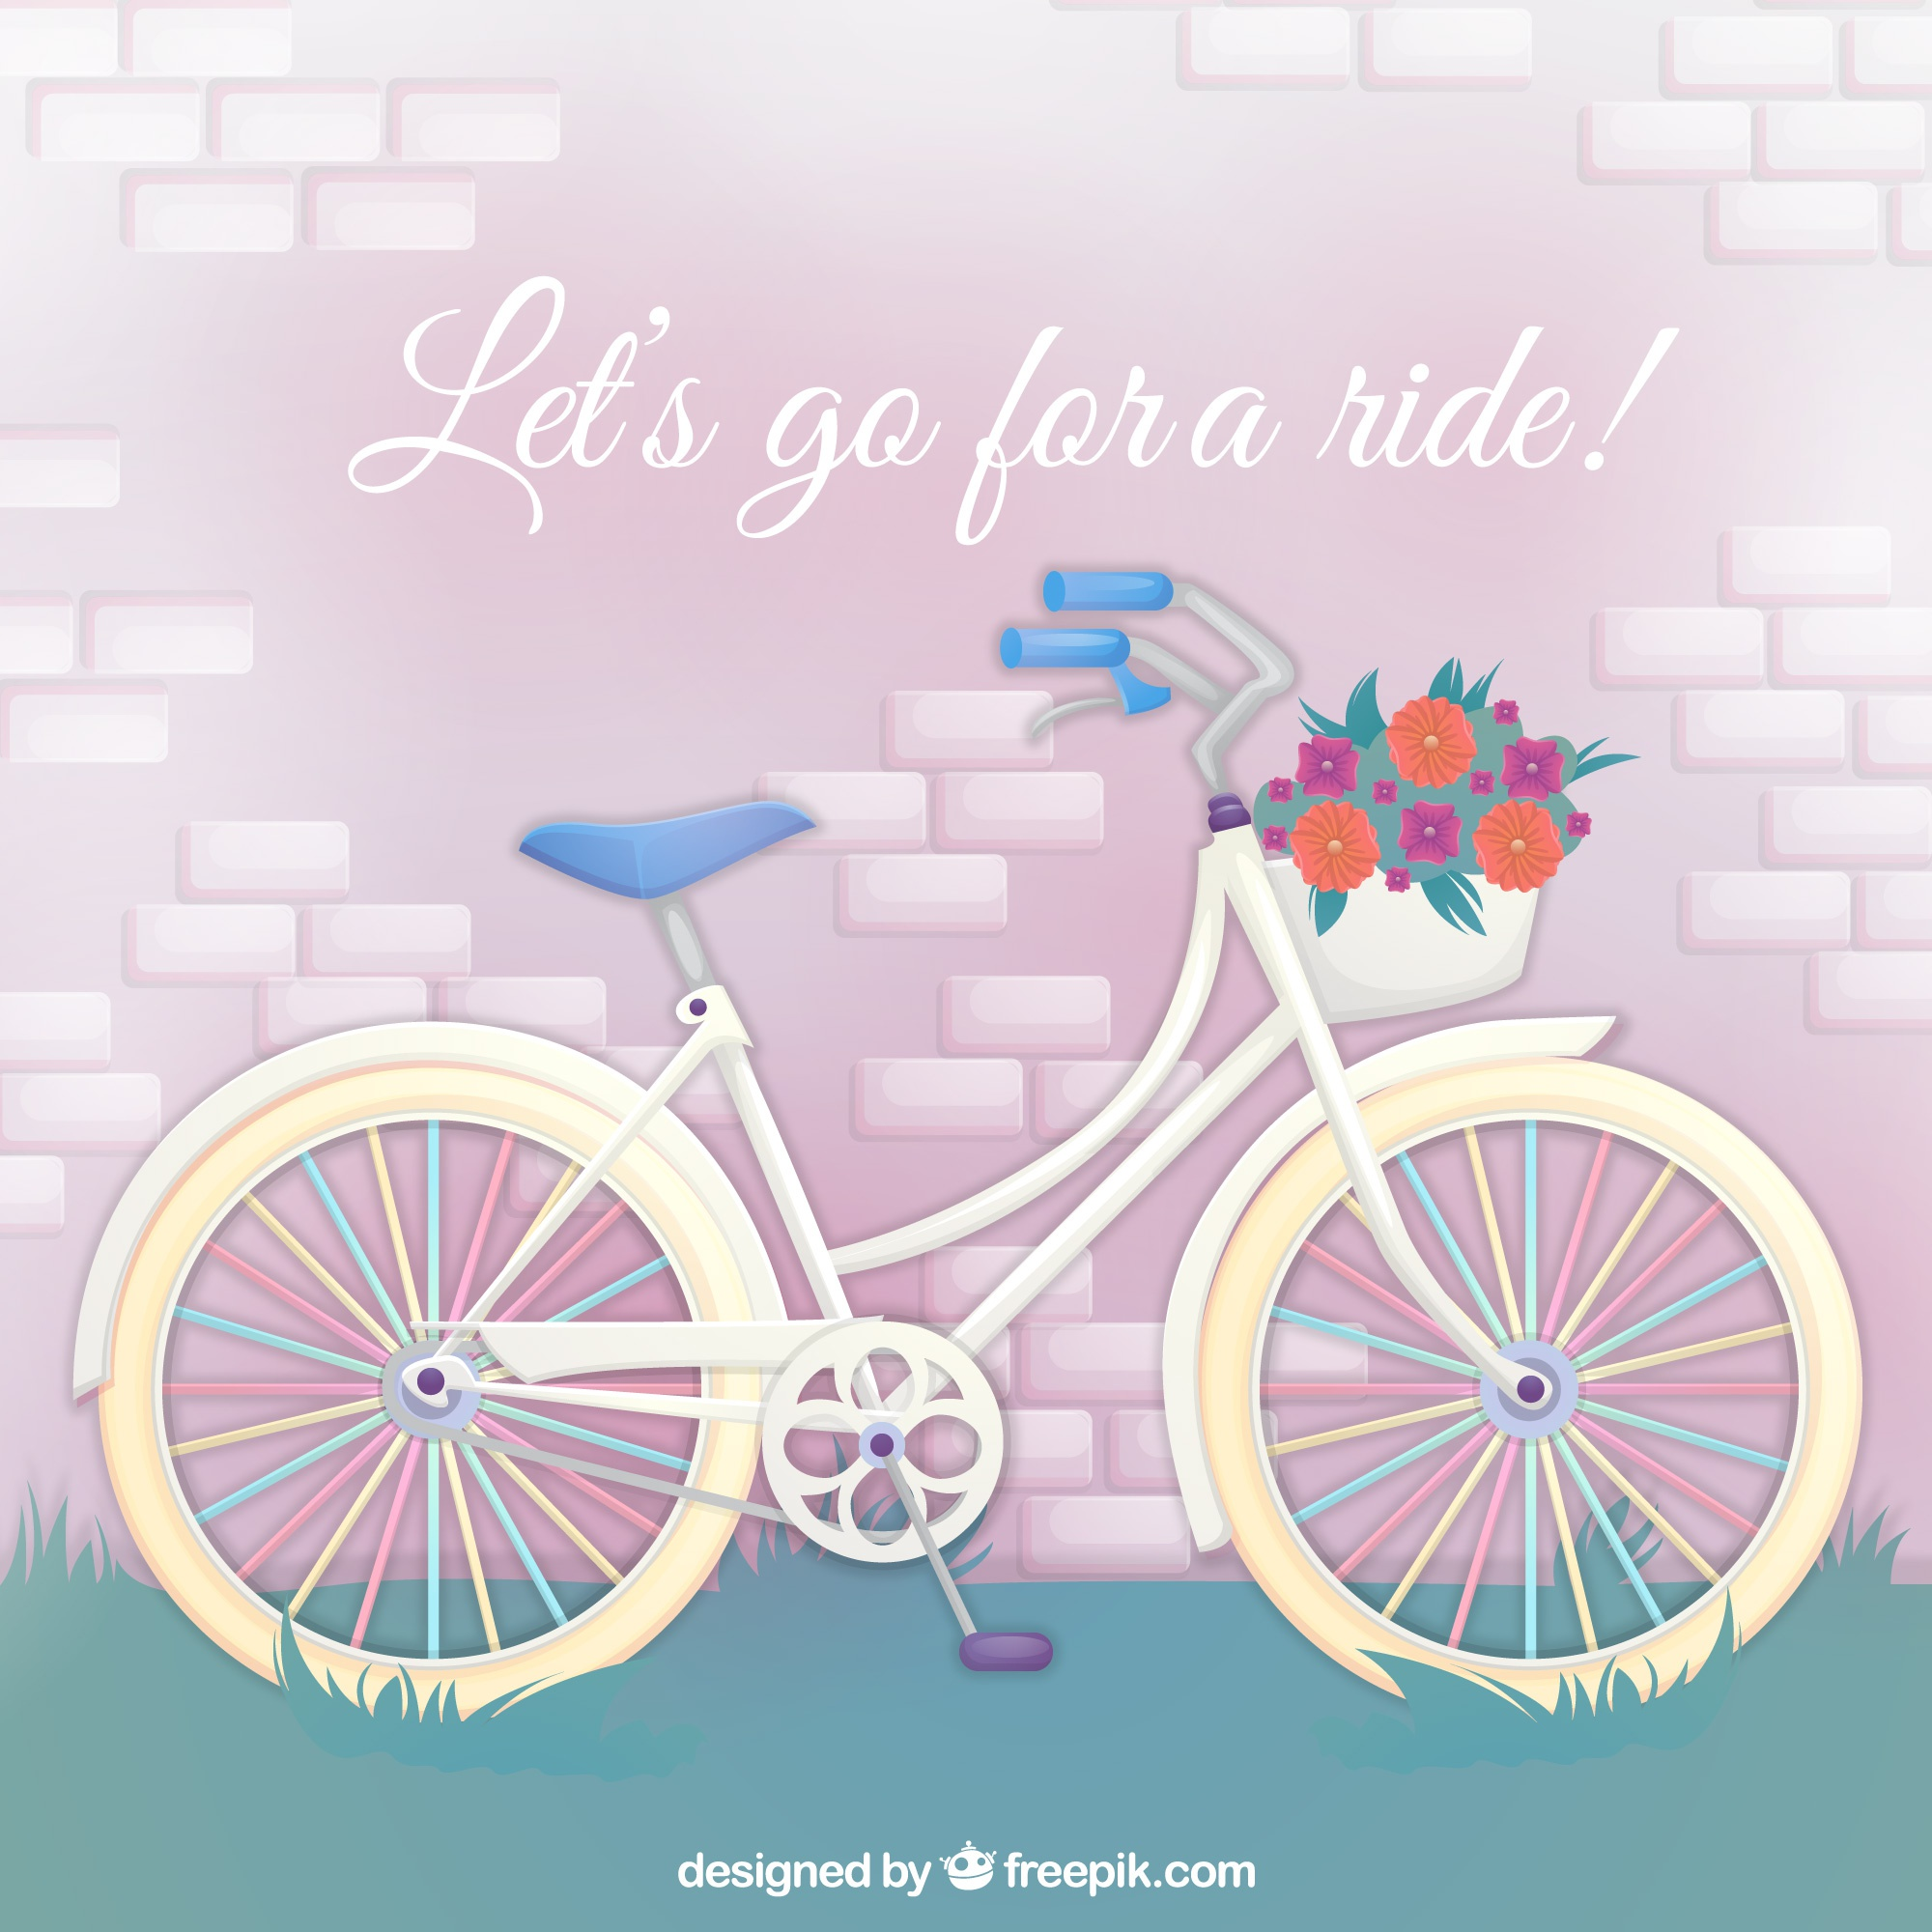 Bike background with quote